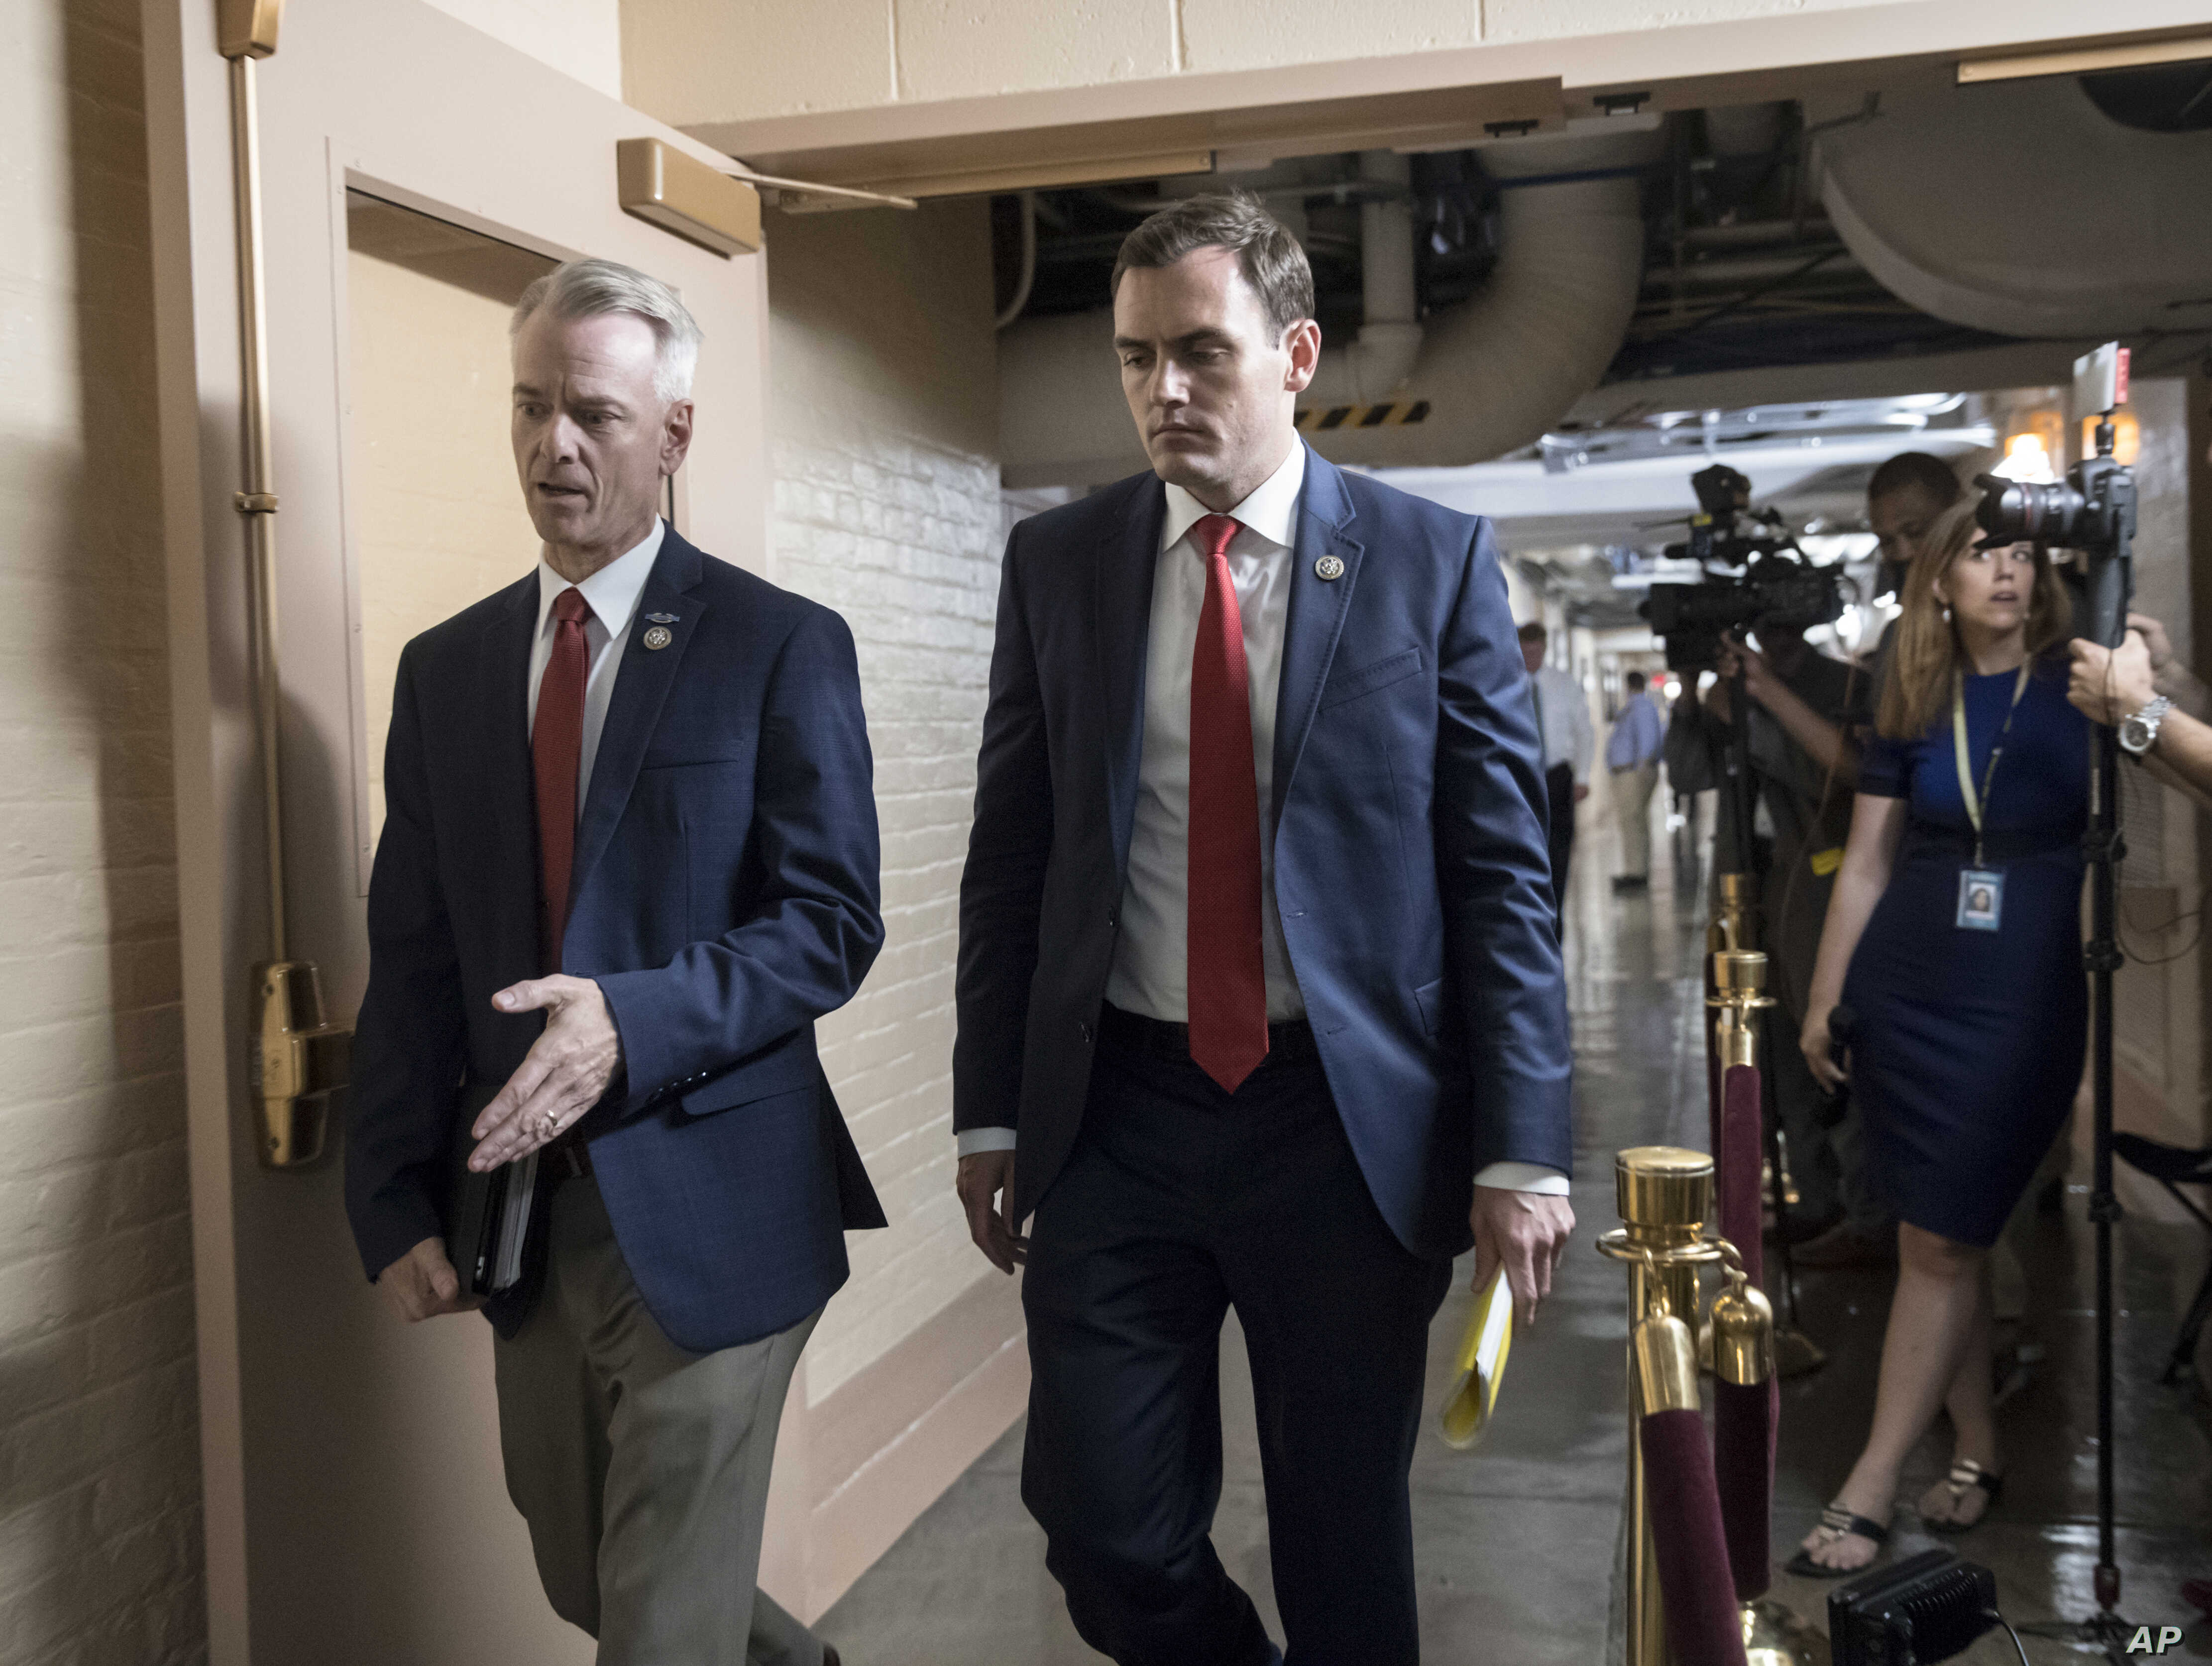 Rep. Steve Russell, R-Okla. (L), and Rep. Mike Gallagher, R-Wis., walk to a closed-door meeting with House Republicans seeking more information about compromise legislation on immigration, at the Capitol in Washington, June 21, 2018.